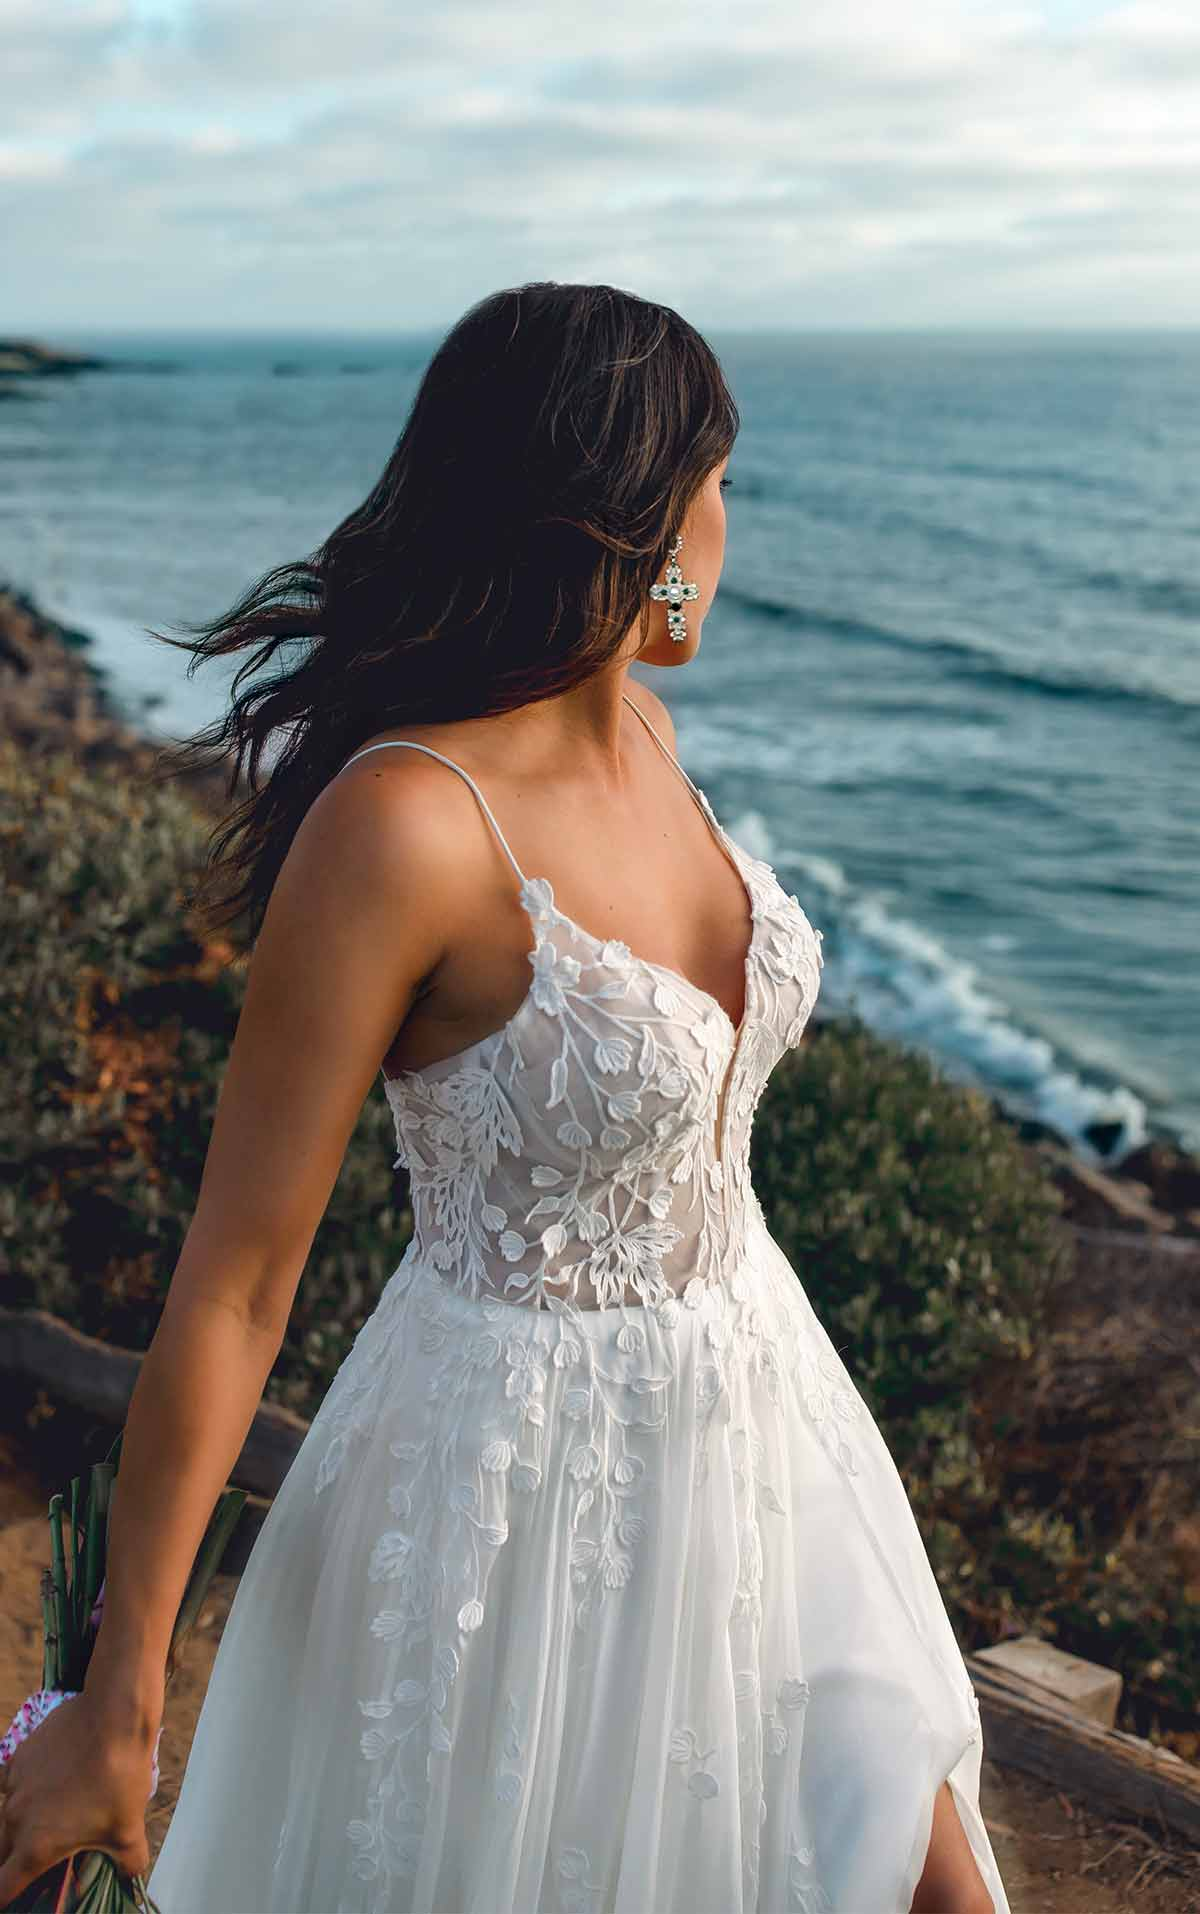 Muse Modern A-Line Boho Wedding Dress with Minimalist Straps and Plunging V-Neck by All Who Wander